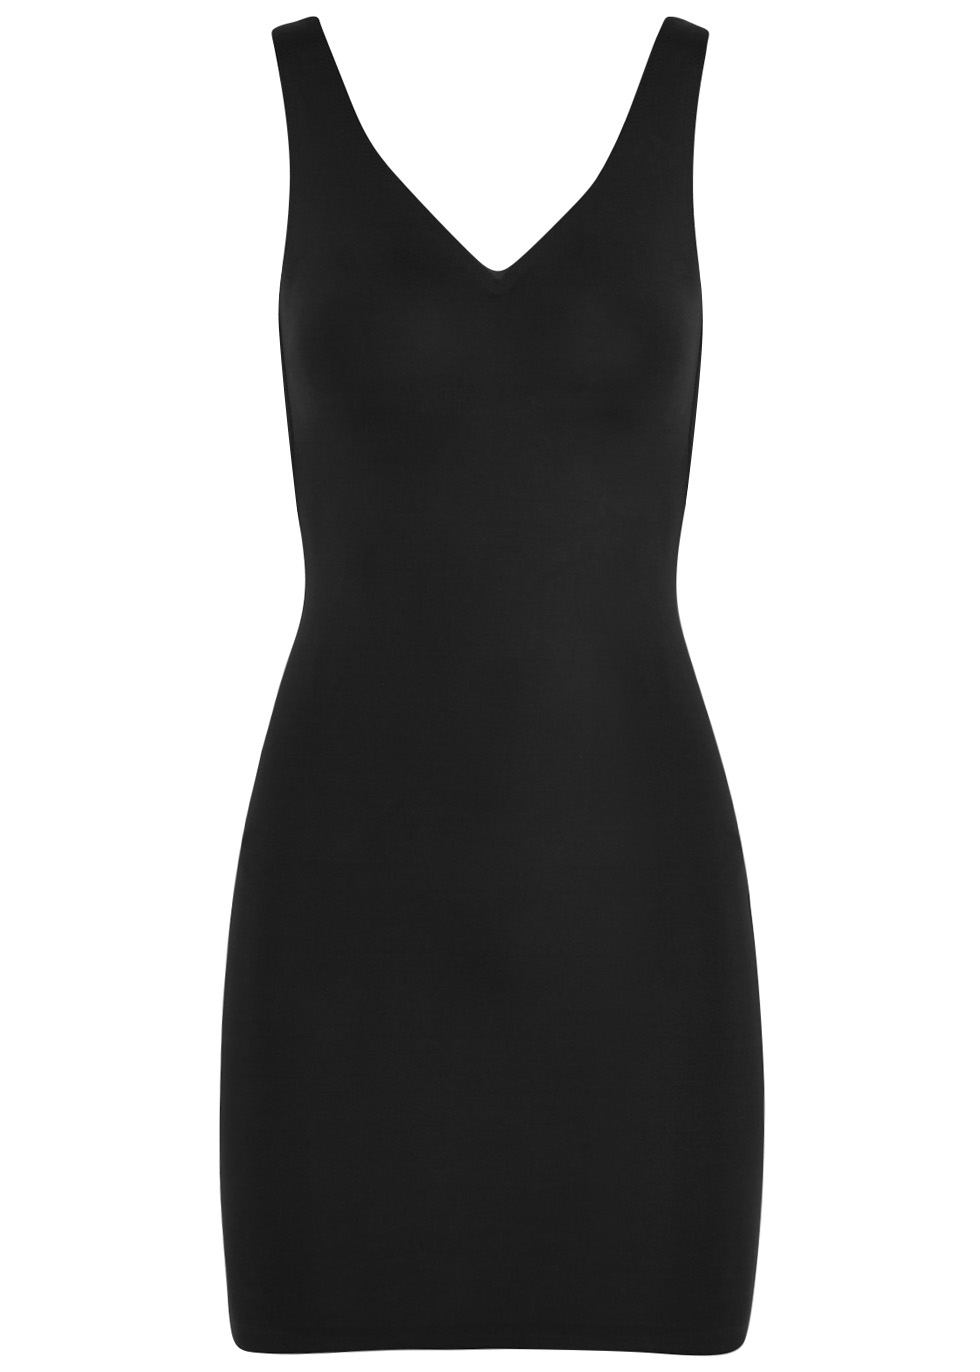 Beyond Naked shaping dress - Wacoal